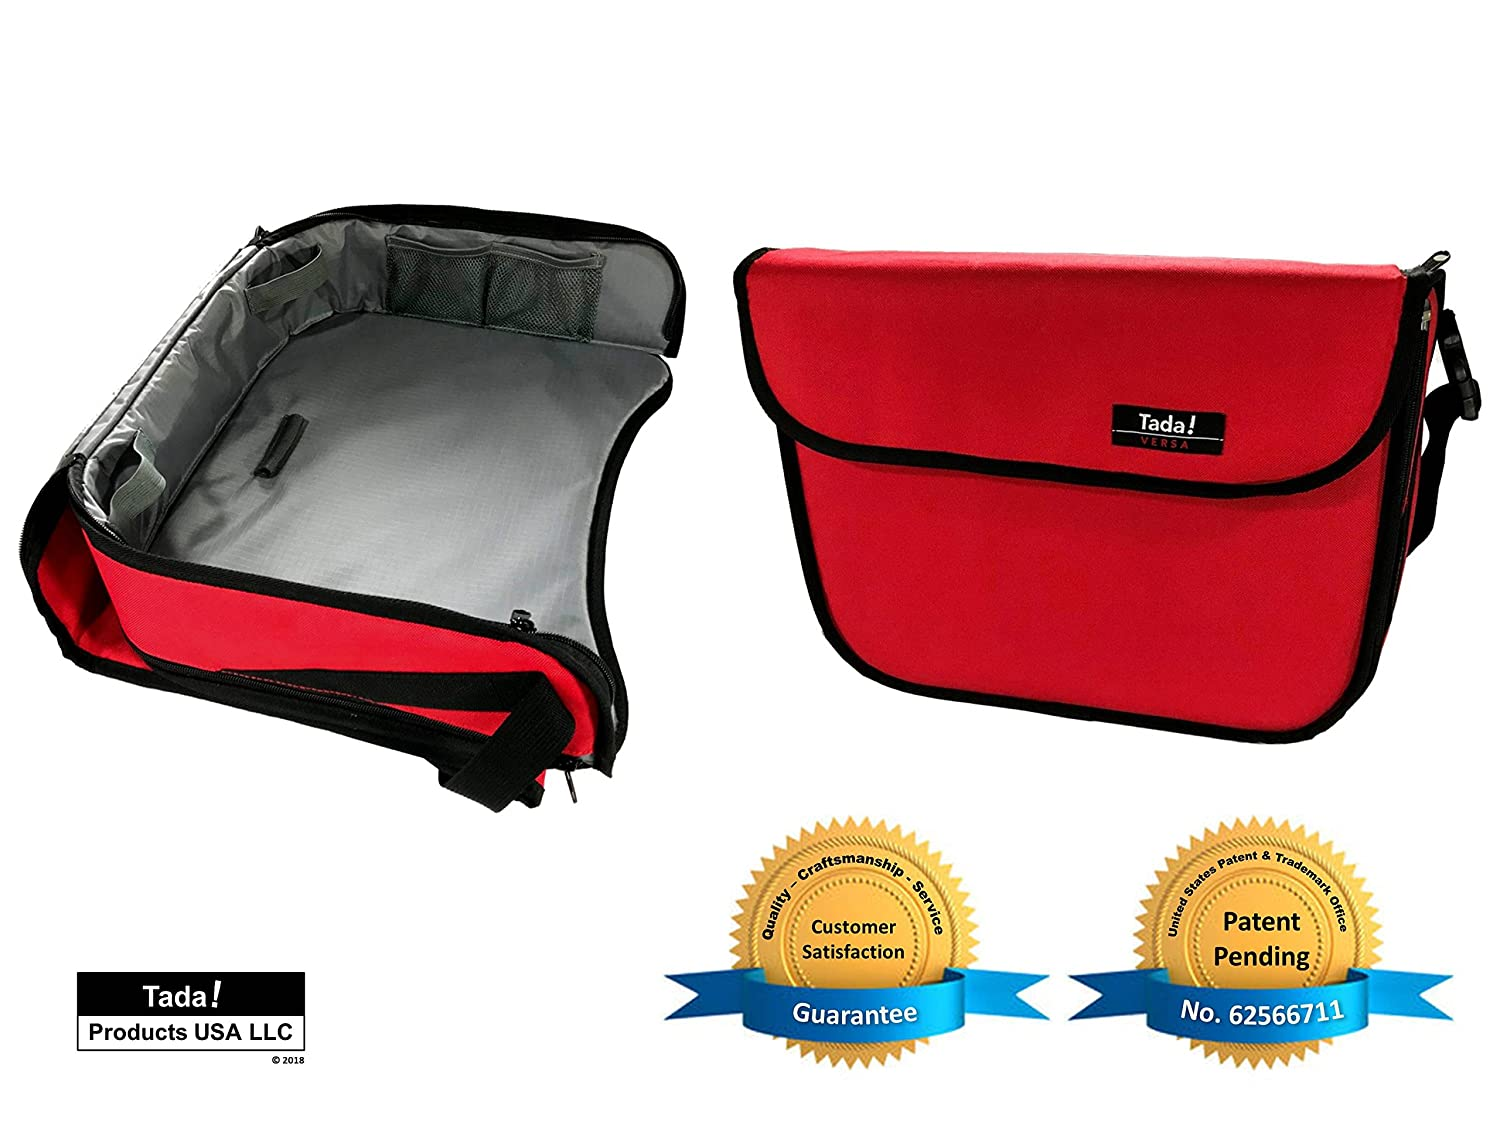 Kids Car Seat Tray - Convertible From Tray to Bag - Child / Toddler / Baby Car Seat Activity Play & Snack Tray - Car Organizer / Diaper Bag / Lap Tray - NEW VERSA From Tada Products Tada Products USA